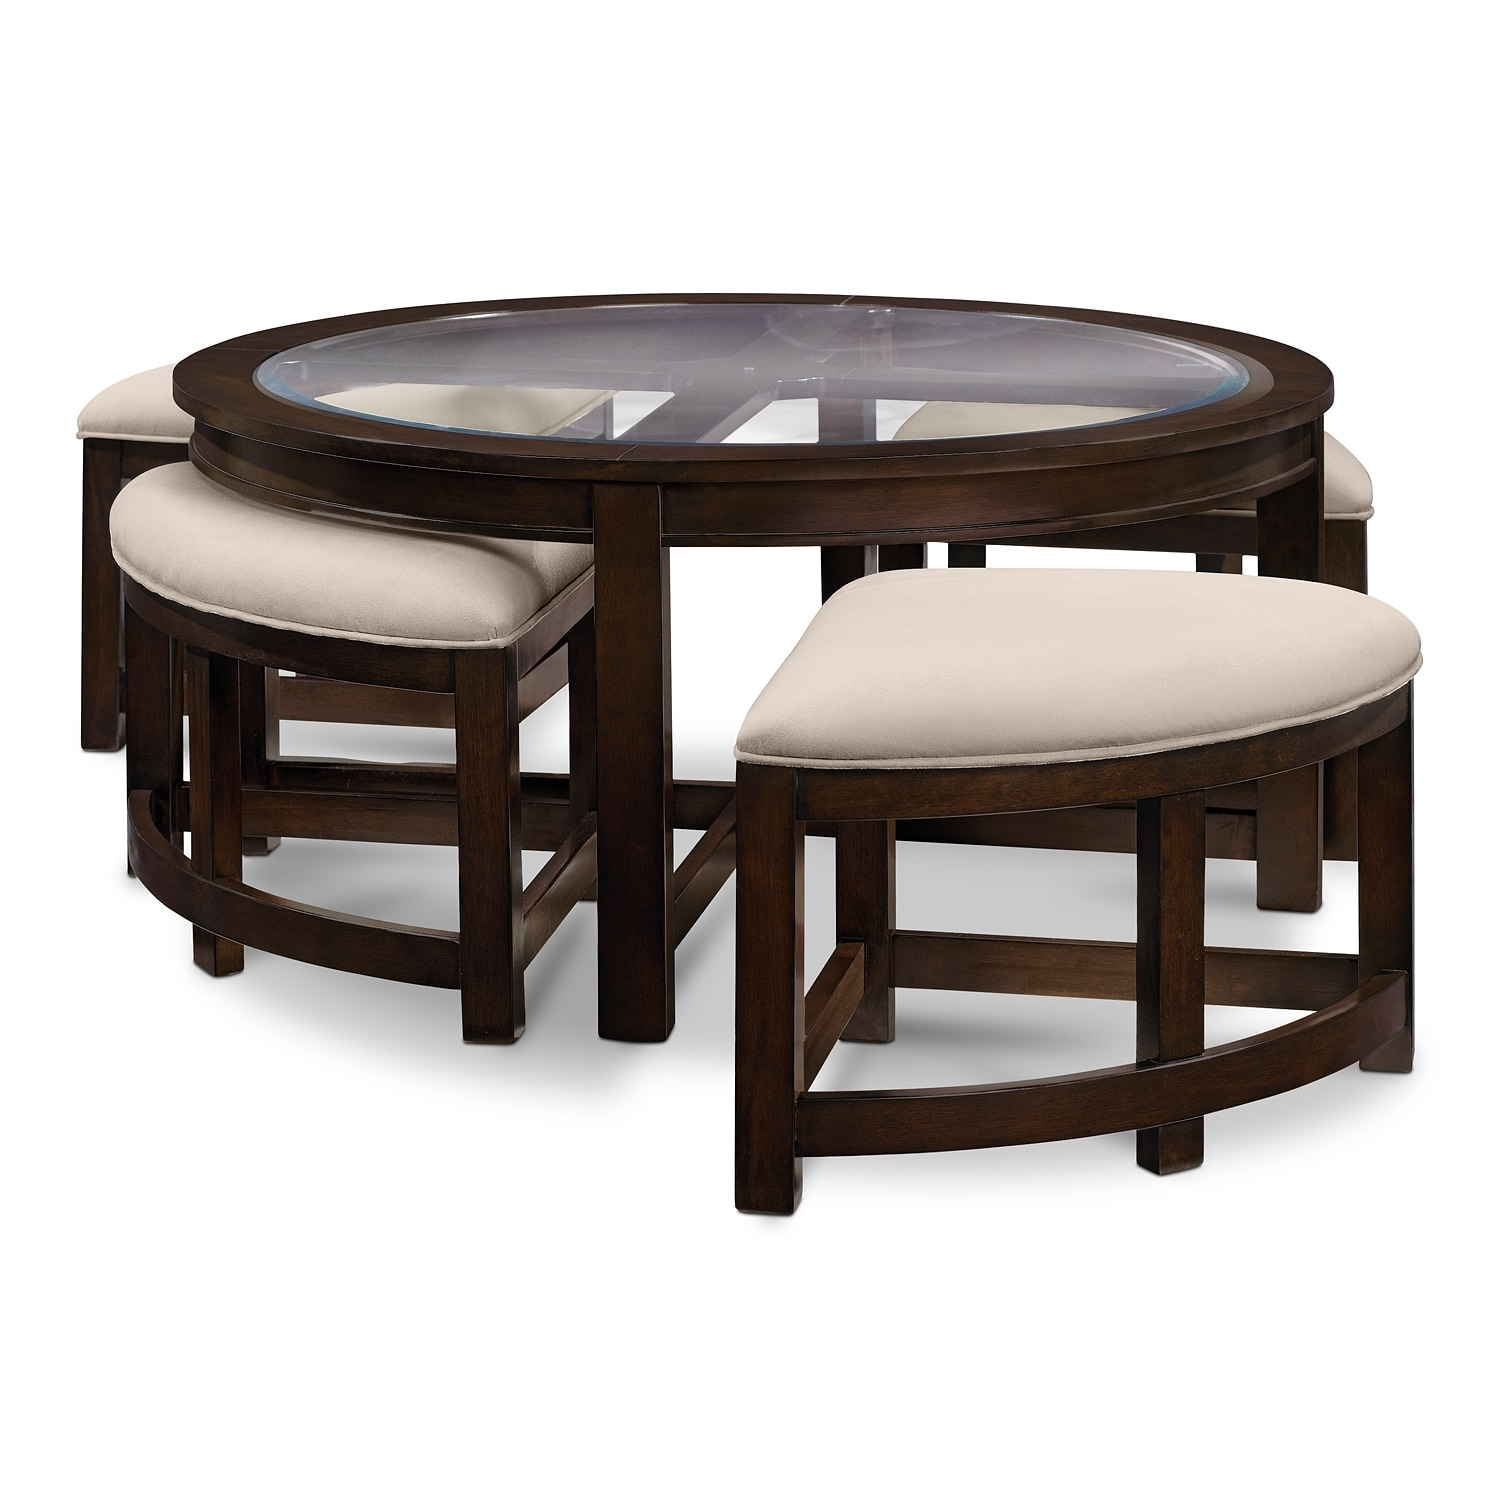 Four Corners Cocktail Table W/ 4 Benches   Merlot